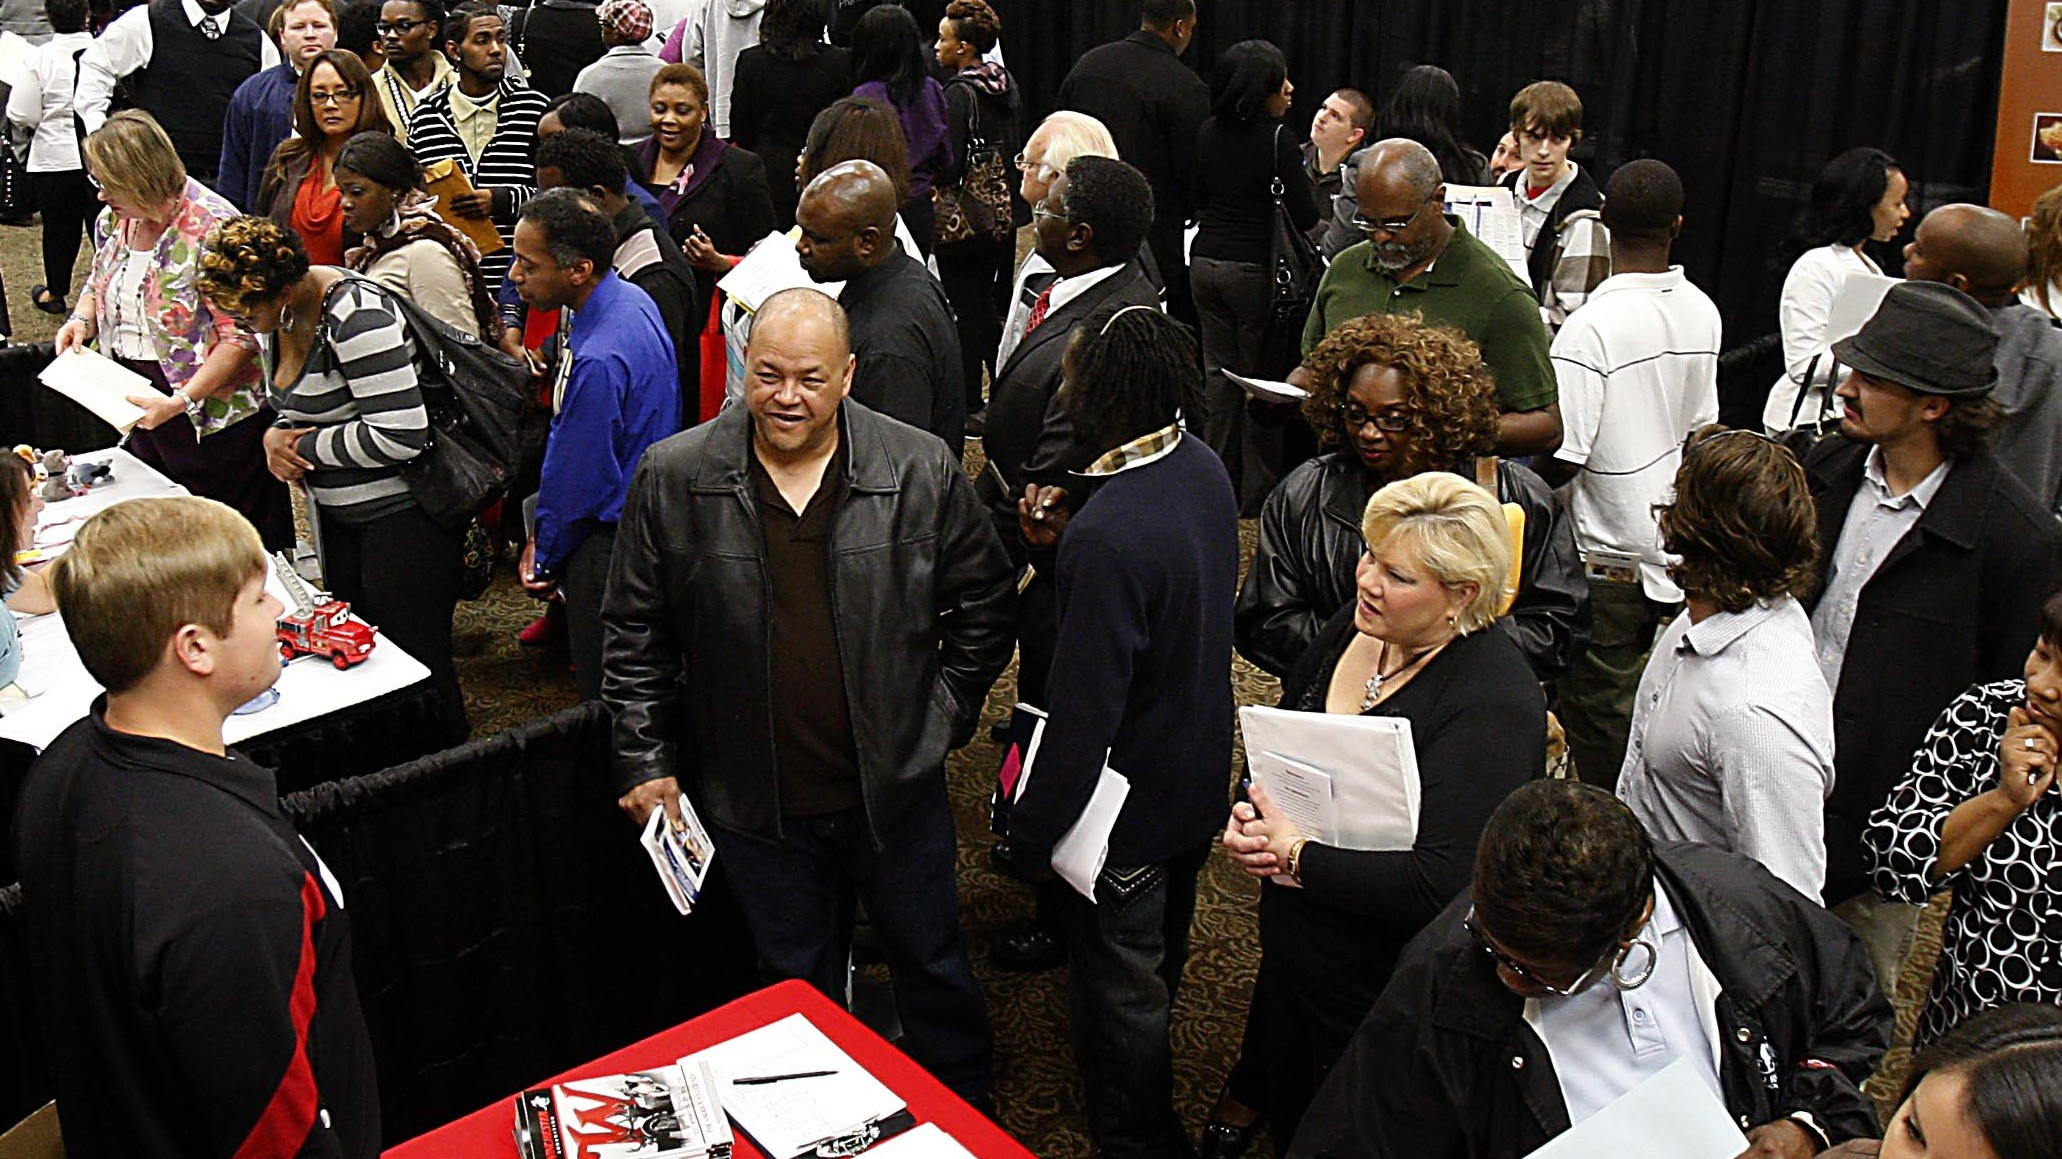 PHOTO: Hundreds of job applicants attend the DeSoto County Job Fair at Landers Center, Tuesday, Oct. 9, 2012, in Southaven, Miss.